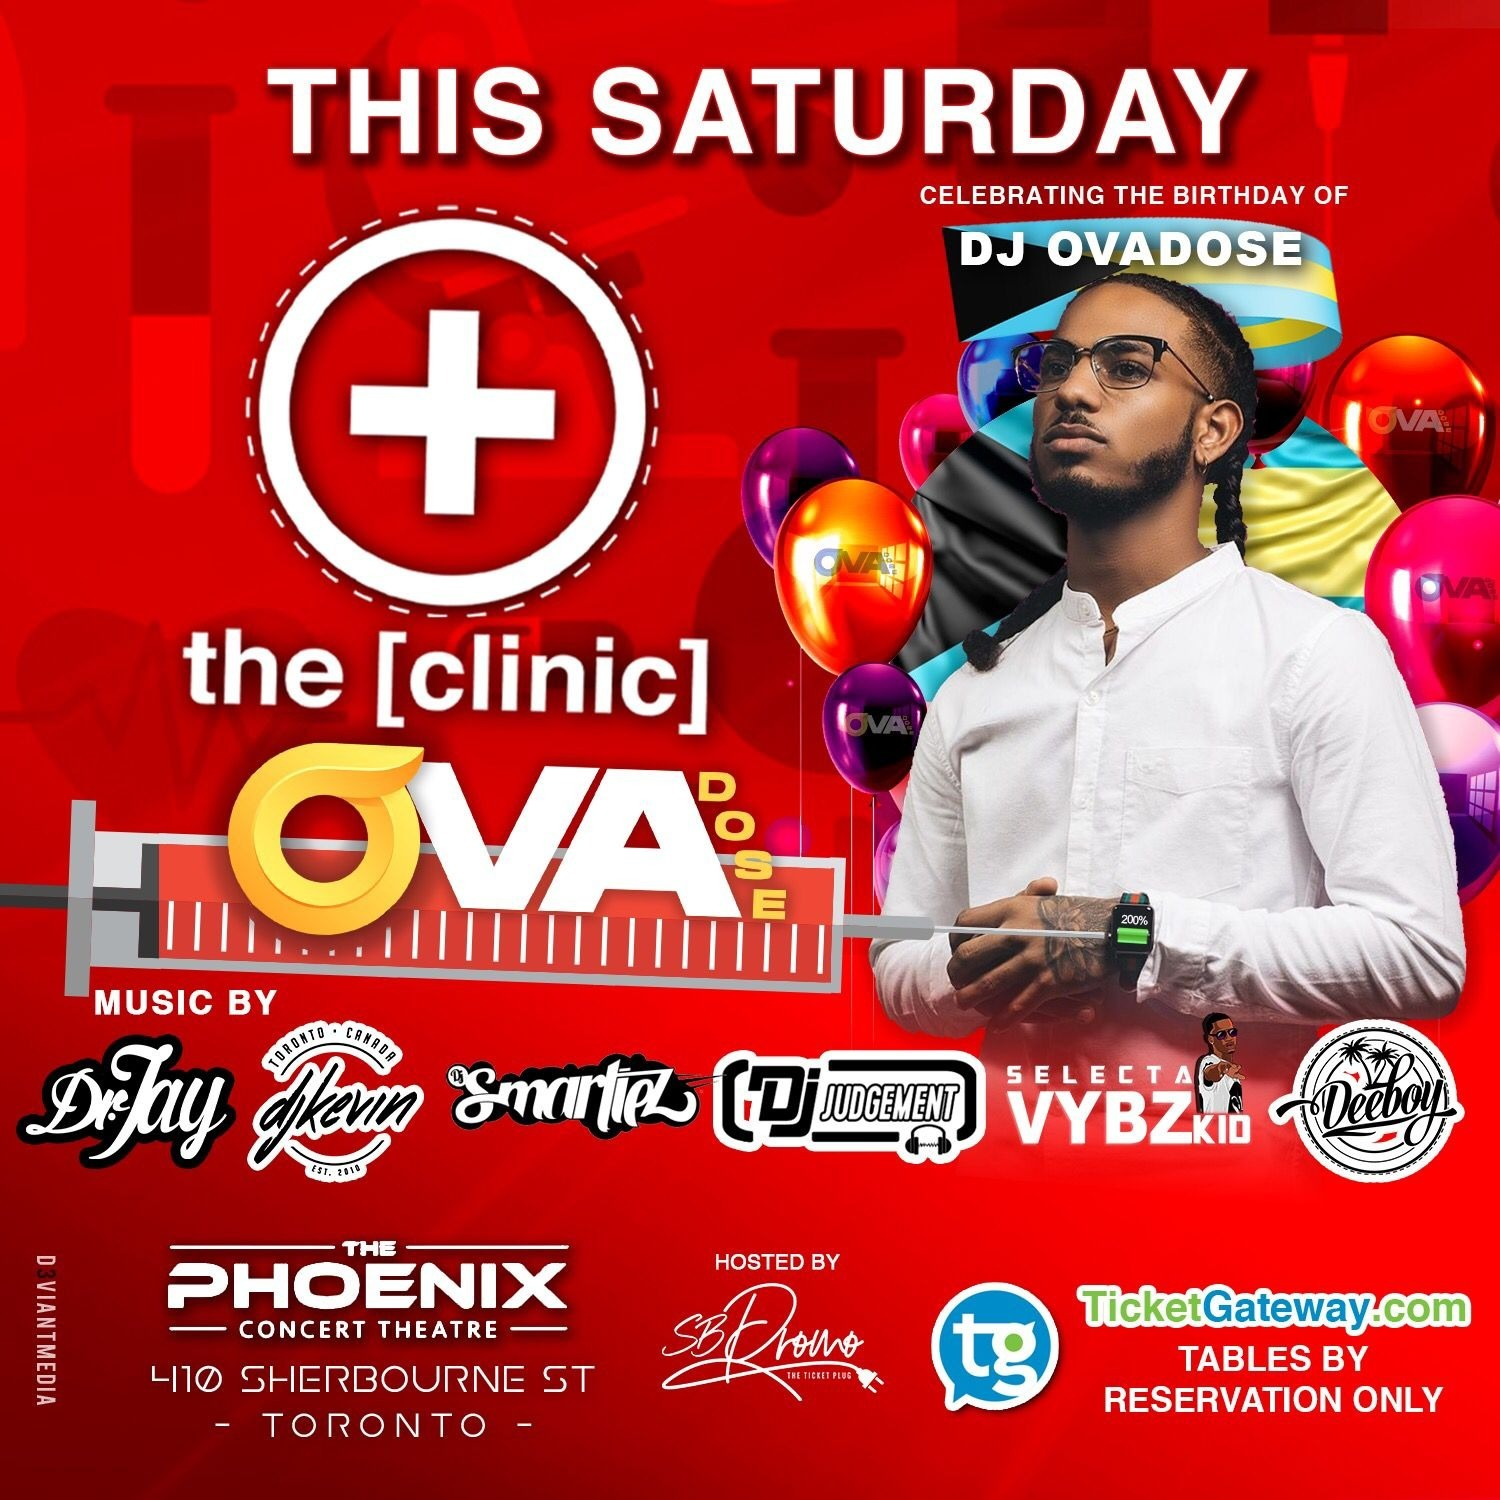 The Clinic at the Phoenix